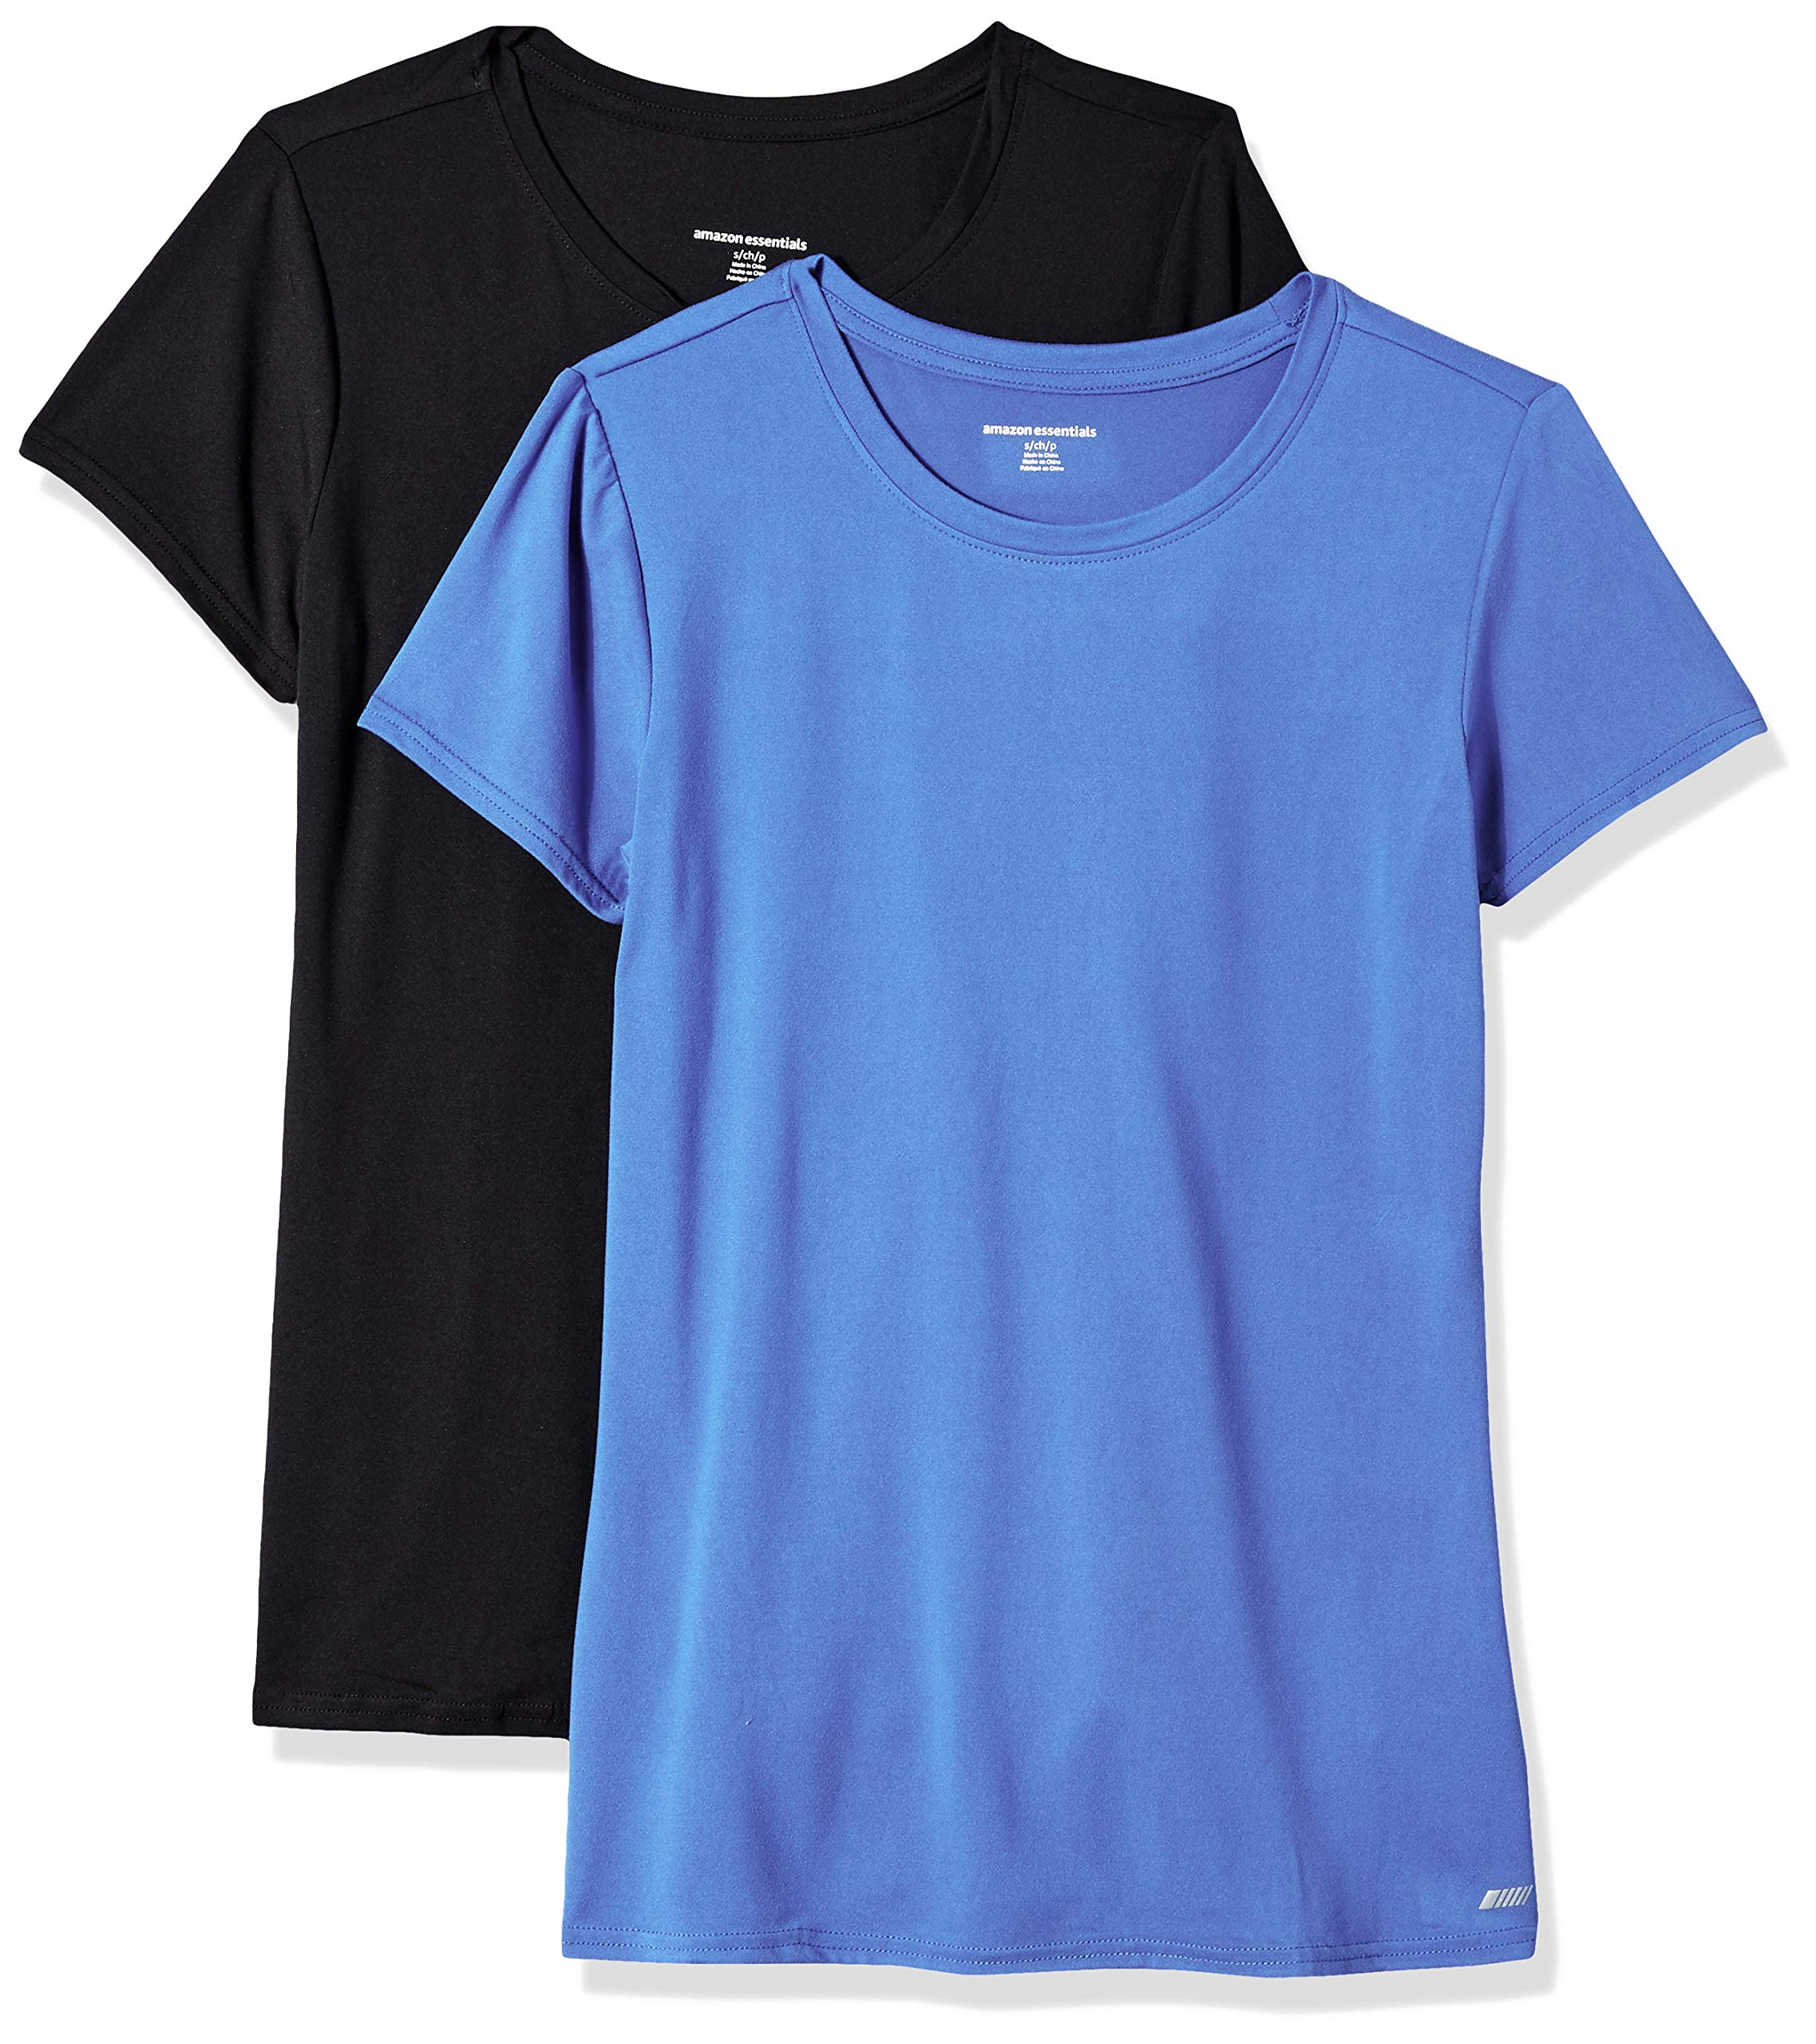 Amazon Essentials Women's 2-Pack Tech Stretch Short-Sleeve Crewneck T-Shirt, -bright blue/black, X-Large by Amazon Essentials